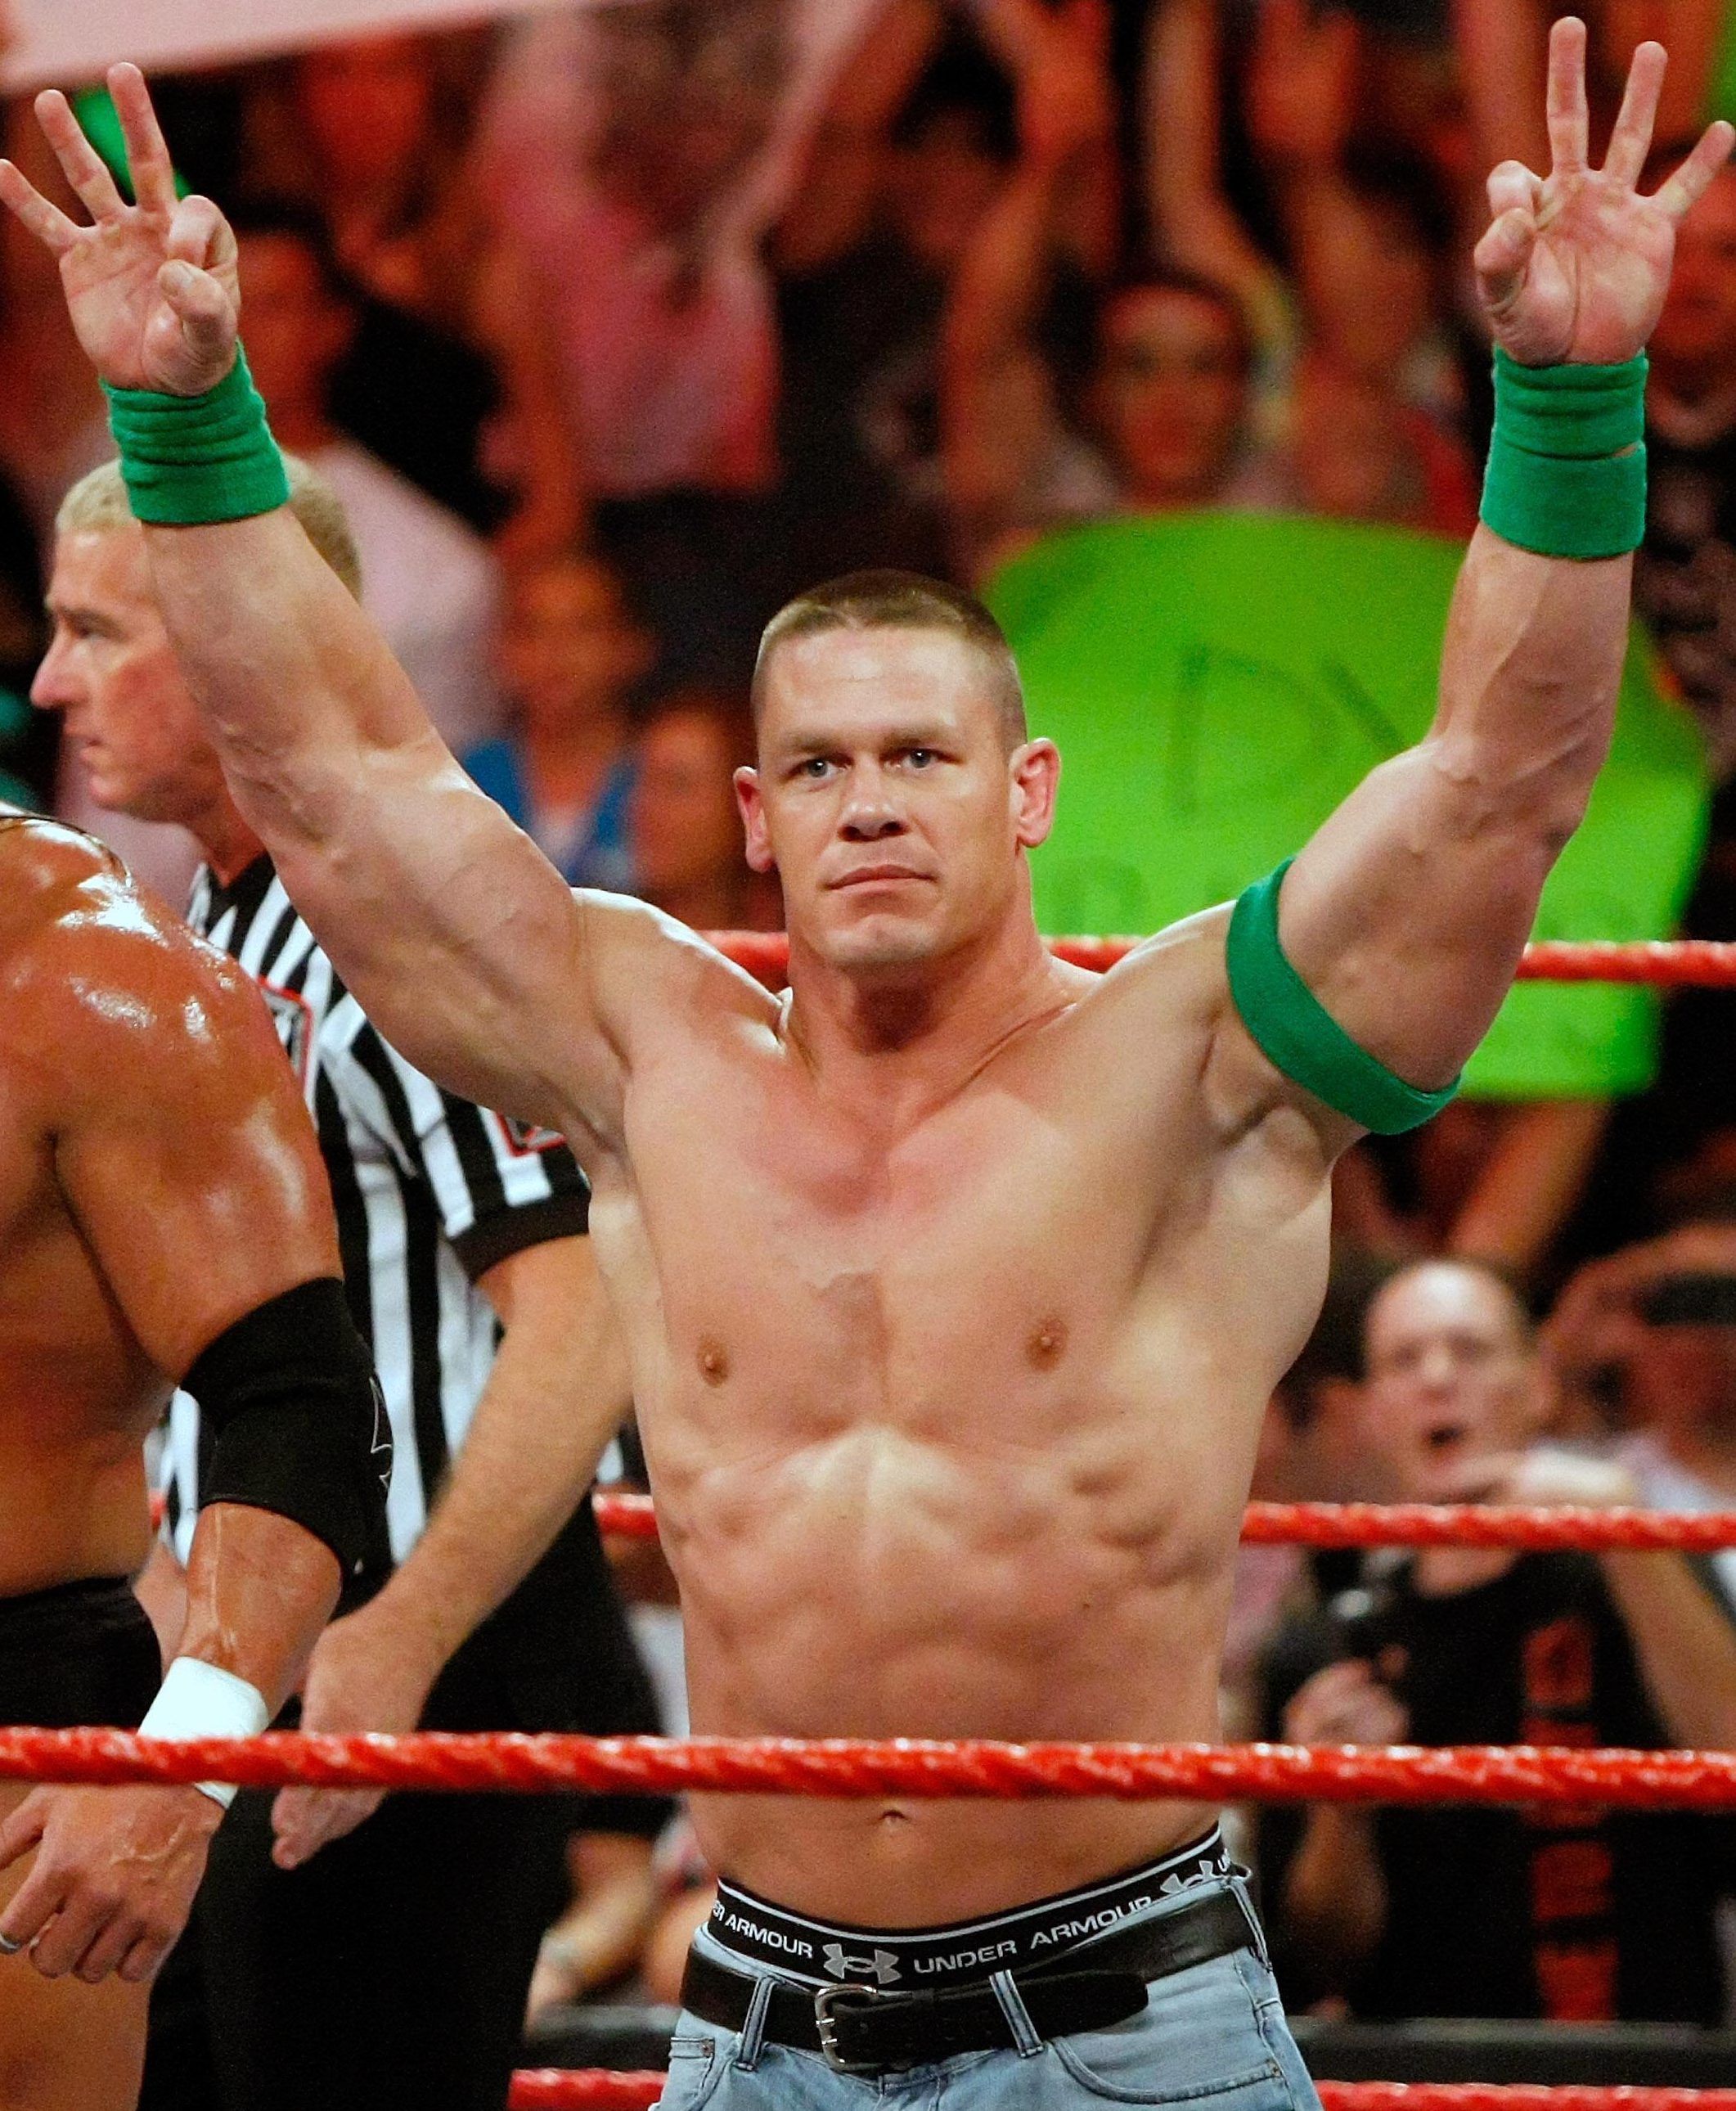 John Cena decided not to grapple at the Crown Jewel in Saudi Arabia